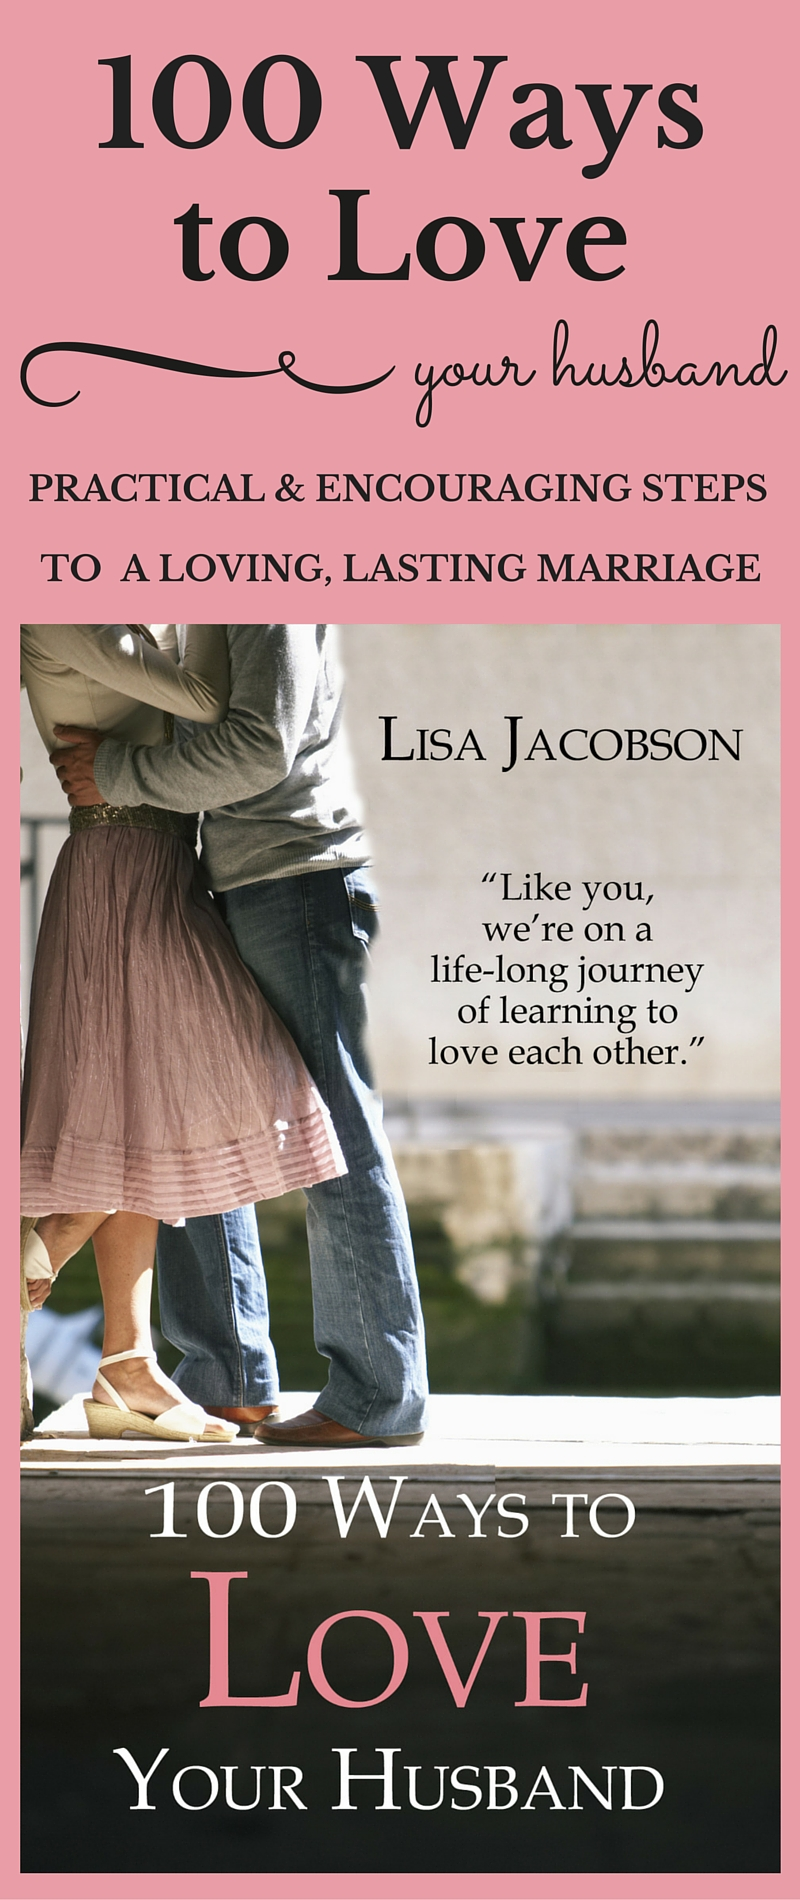 100 Ways to Love Your Husband: Practical and Encouraging Steps To a Lasting Marriage